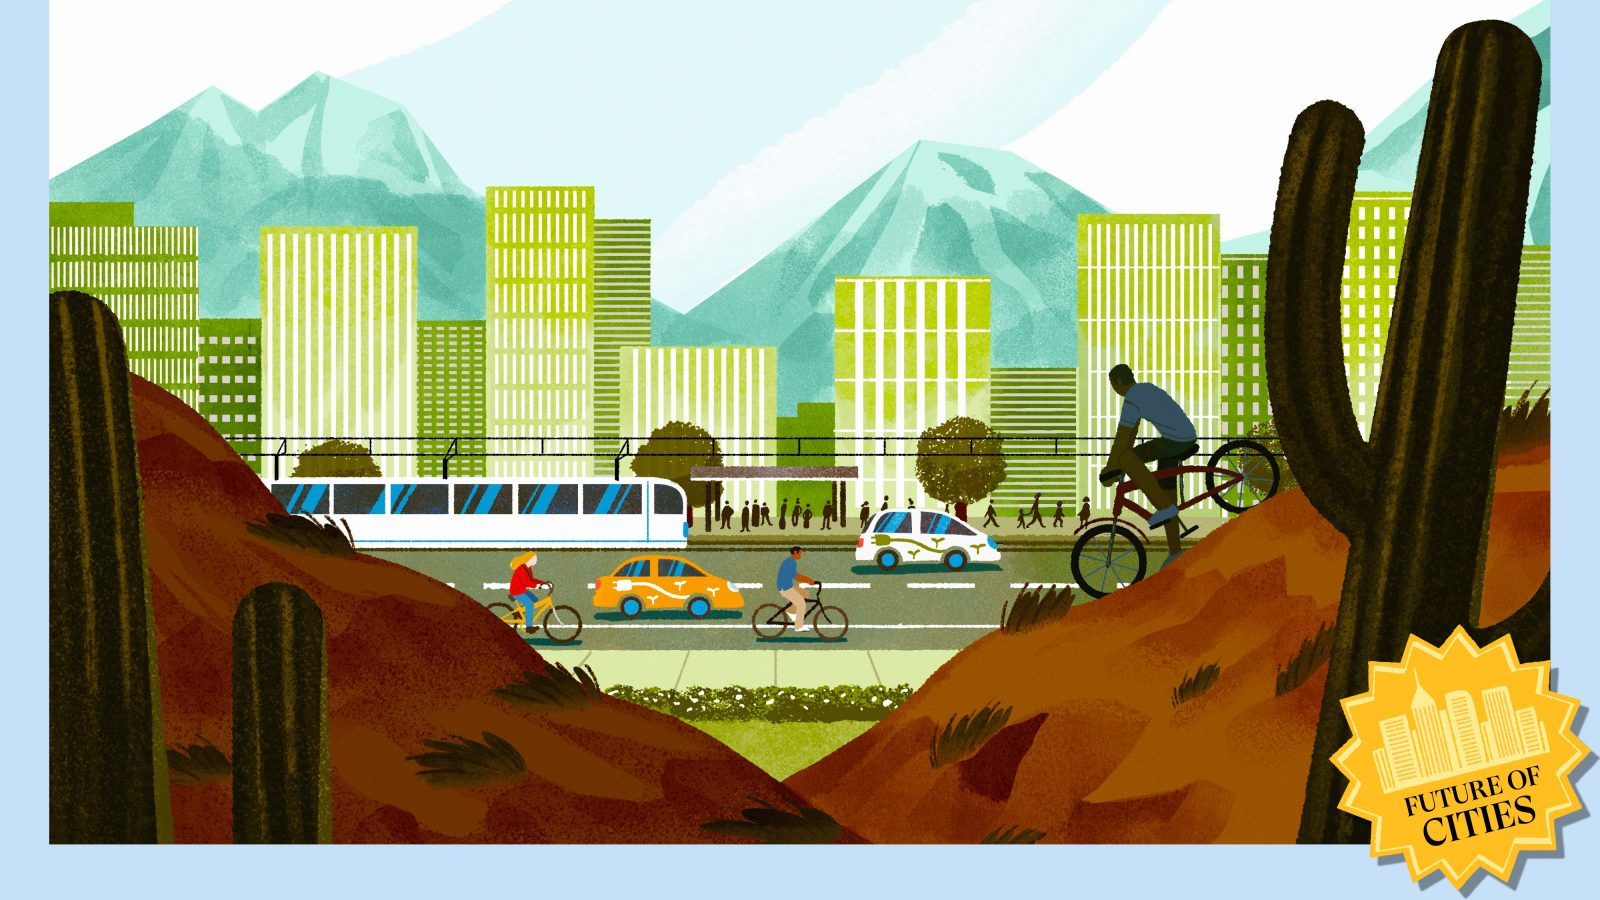 Illustration of a sustainable desert city, with EVs, vegetation, and bikes